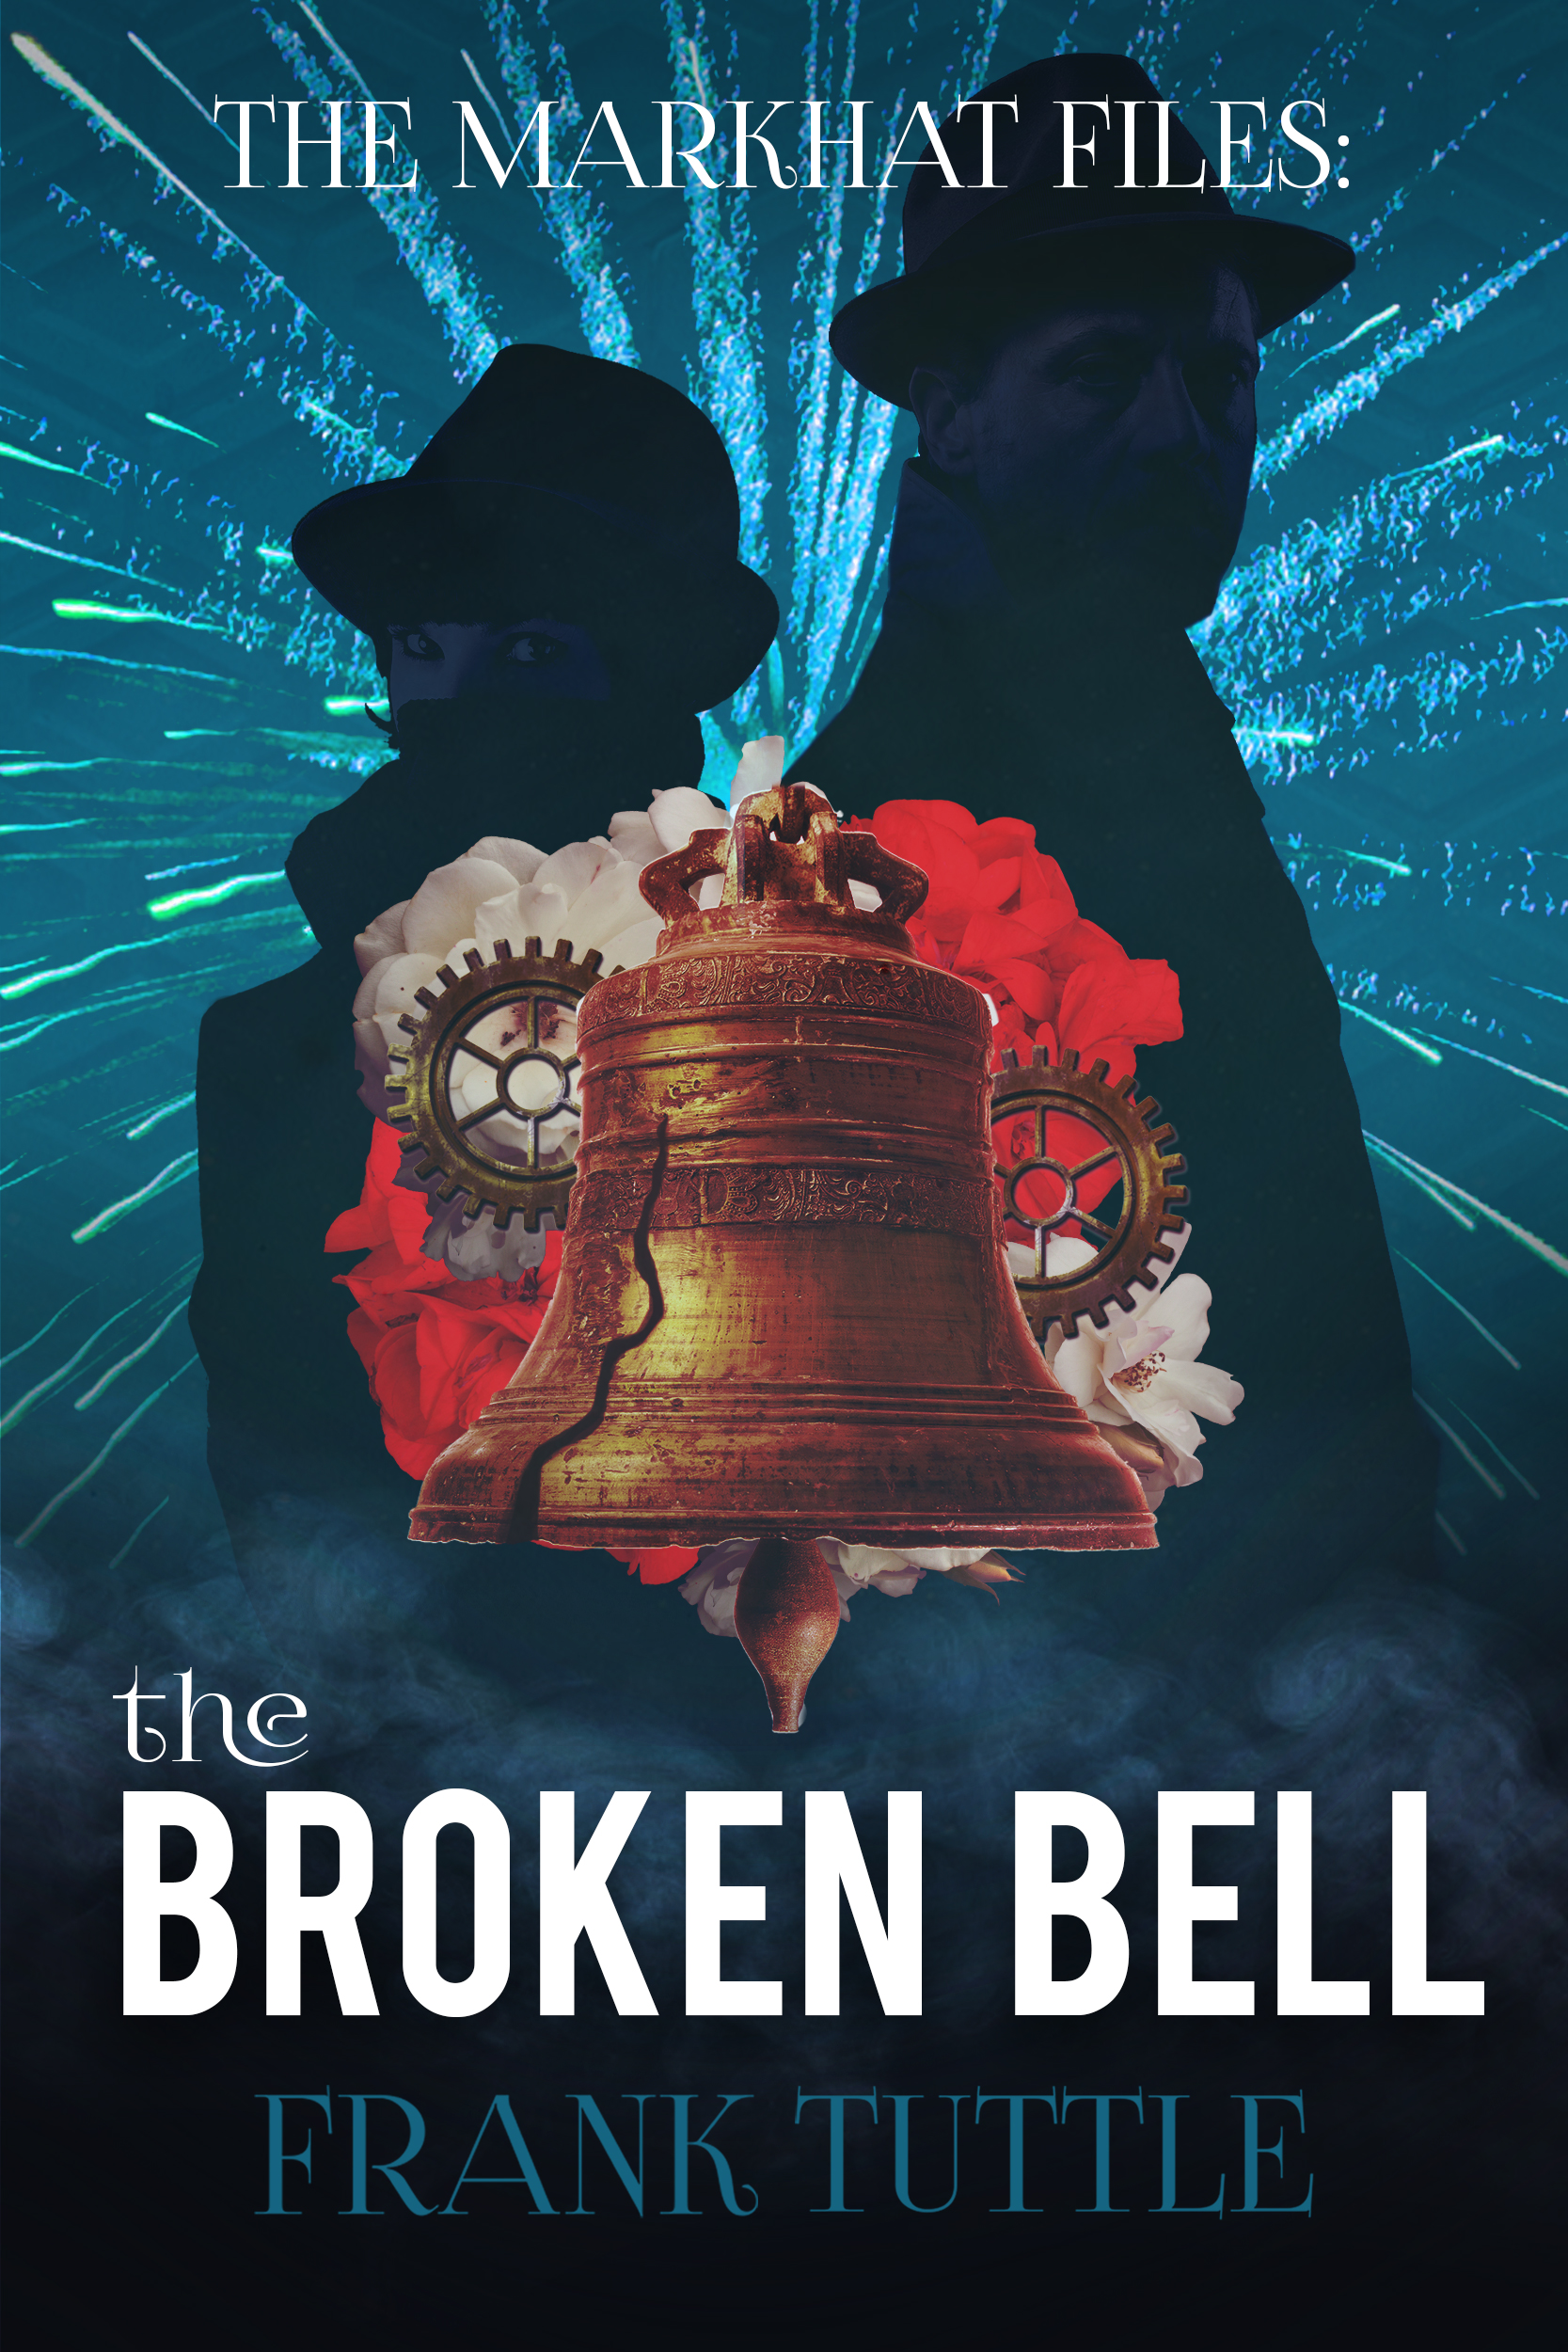 [FT-2017-002]-FT-The-Broken-Bell-E-Book-Cover-Book-4_1667x2500.jpg